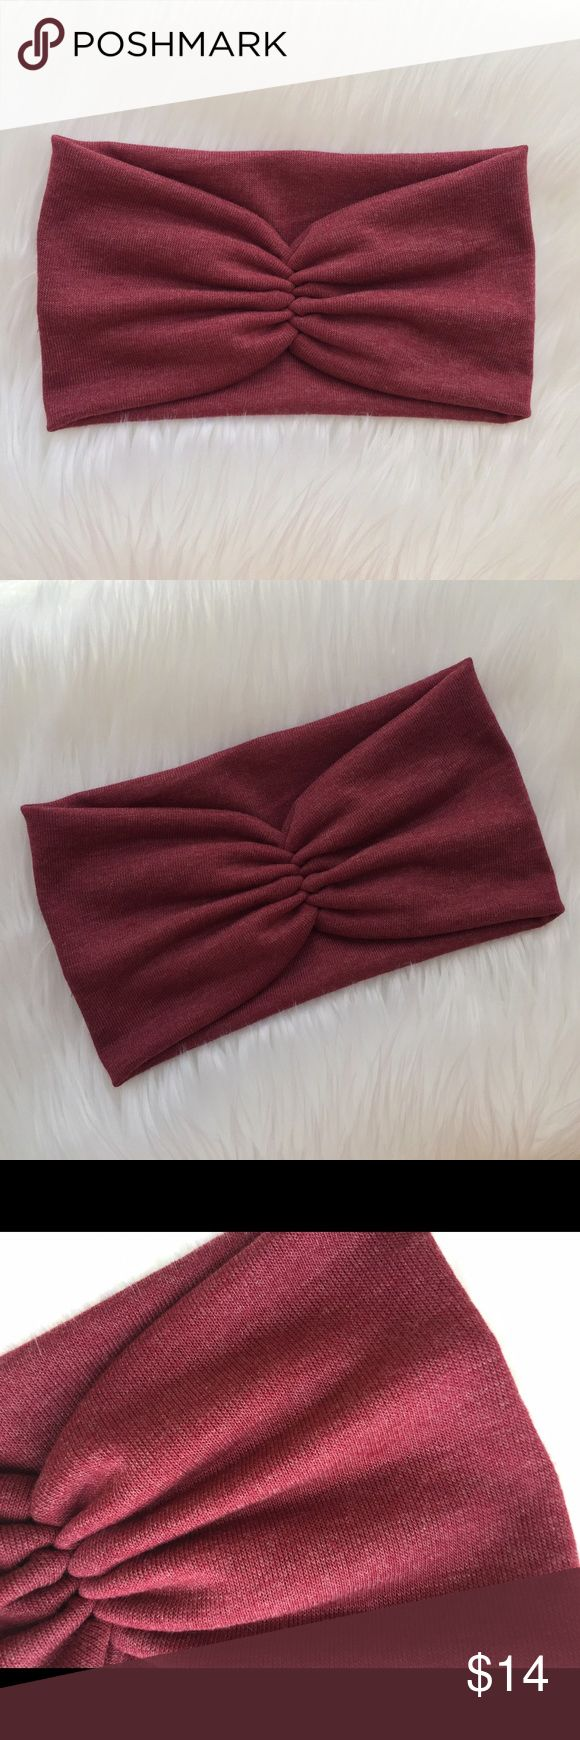 """Winter Scrunch Headband in bold Wine red Scrunch in the front and wide in the back. It is wide and comfy, can be worn wide or scrunch it for a thin look.( great for winter or a cold summer night)                                 Material: crafted from a light weight, soft and stretchy Sweater knit. Band Measures about 5 3/4"""" in the back. Care: Hand Wash cold, lay flat to dry.    *Color of actual product purchased may slightly vary in hue/ color from photograph due to camera lighting…"""